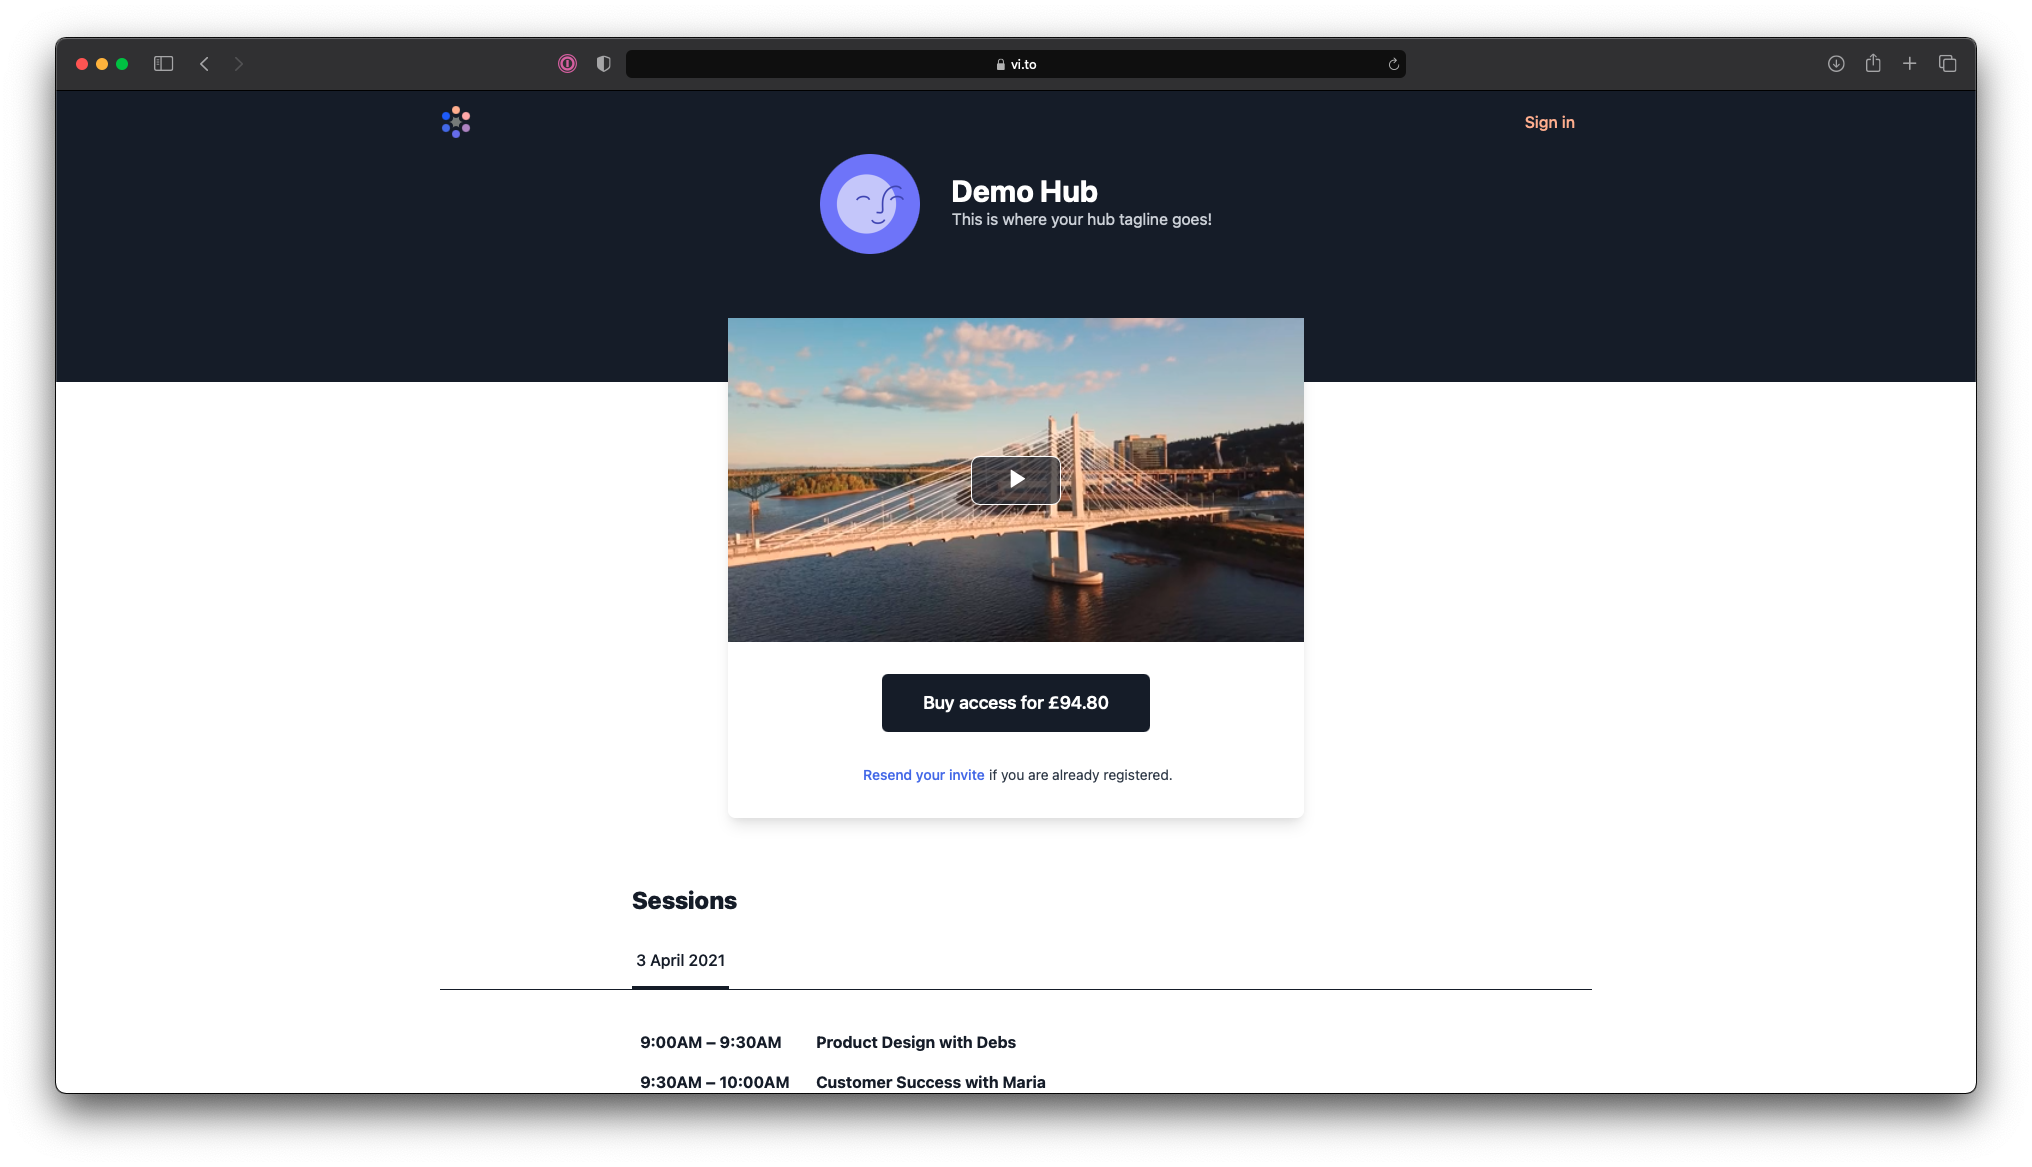 Screenshot of a public page for Demo Hub with a teaser video and a button to buy access for £94.80.